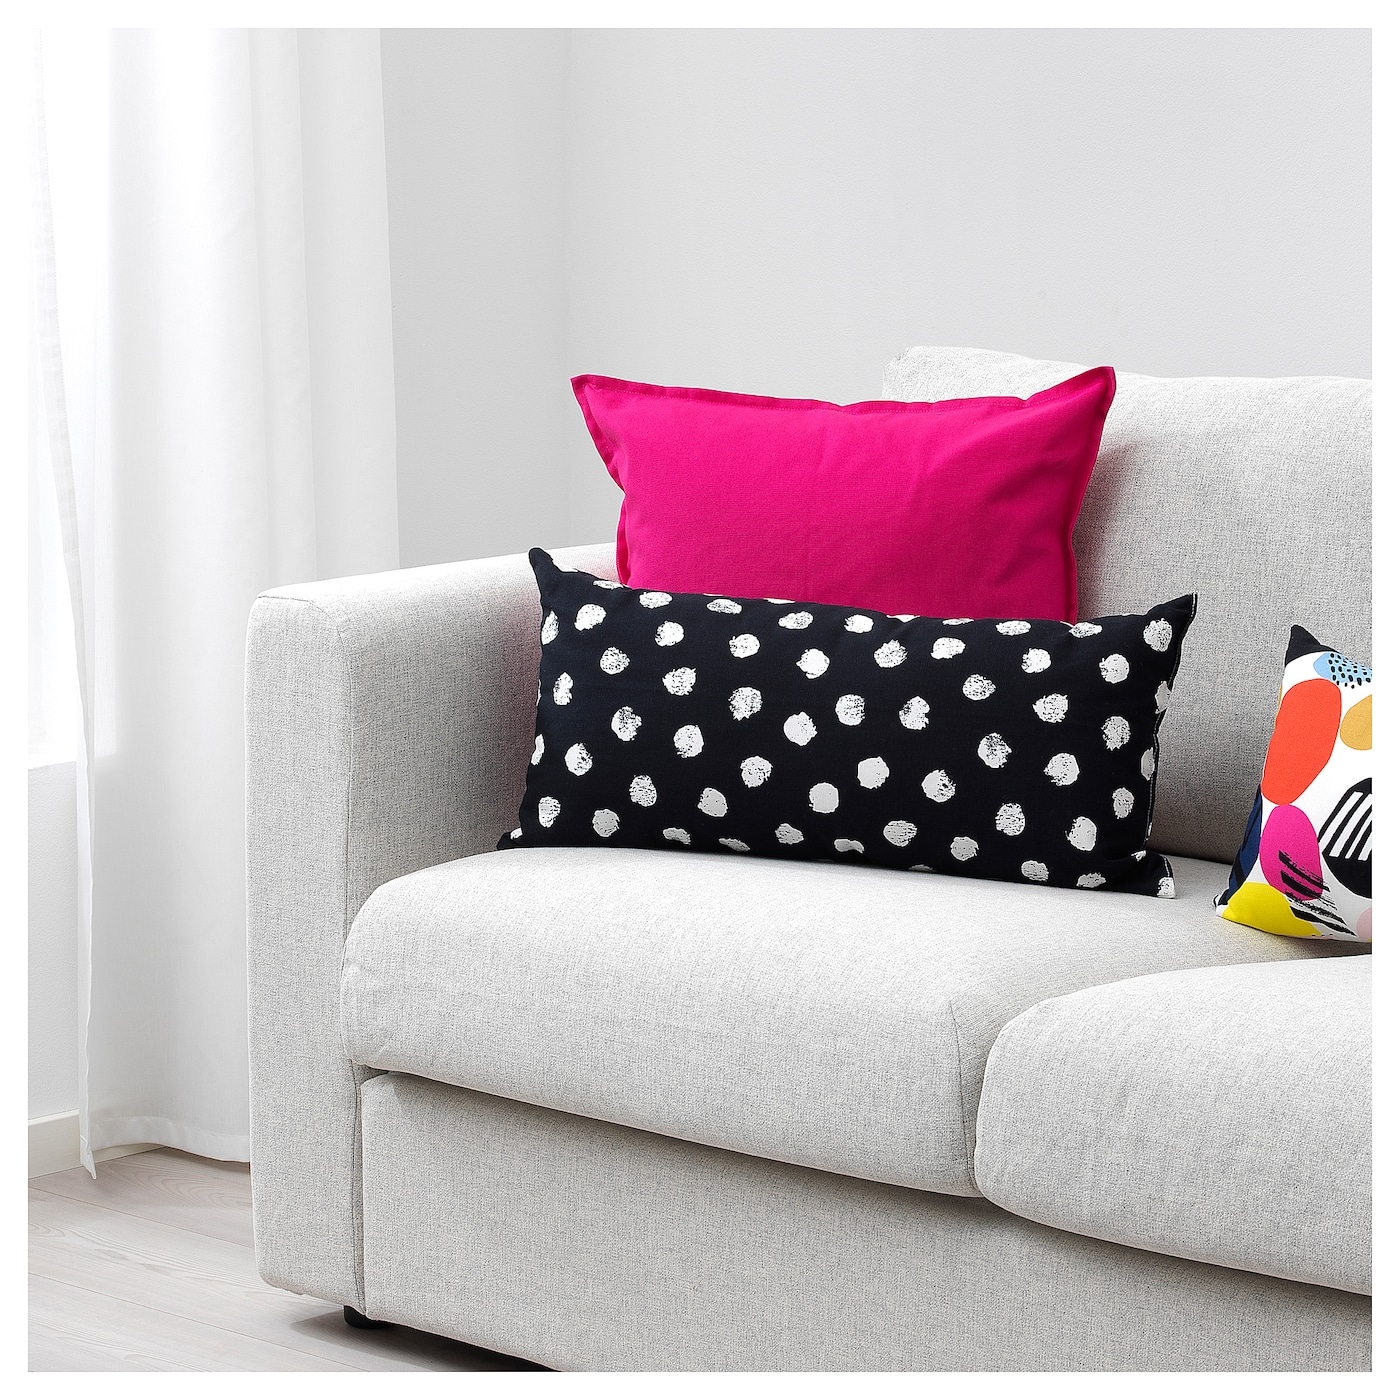 IKEA SKÄGGÖRT cushion The polyester filling holds its shape and gives your body soft support.